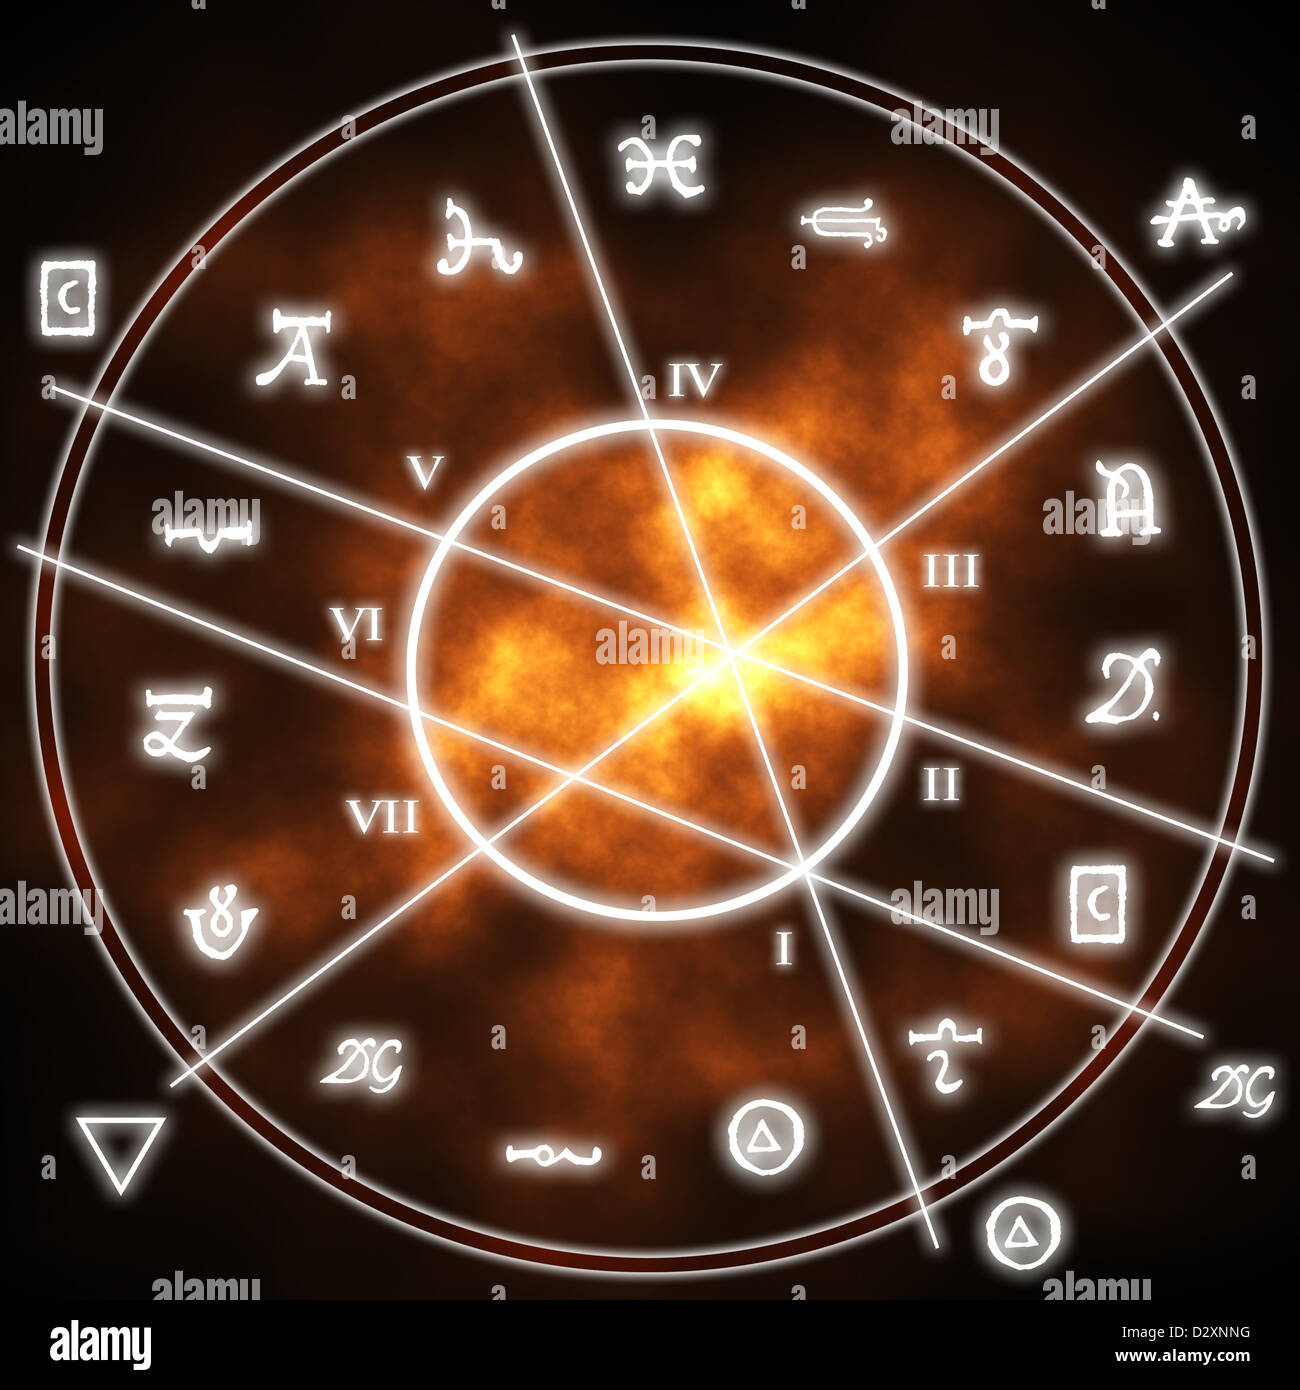 alchemy symbols around a circle with numbers and lines - Stock Image